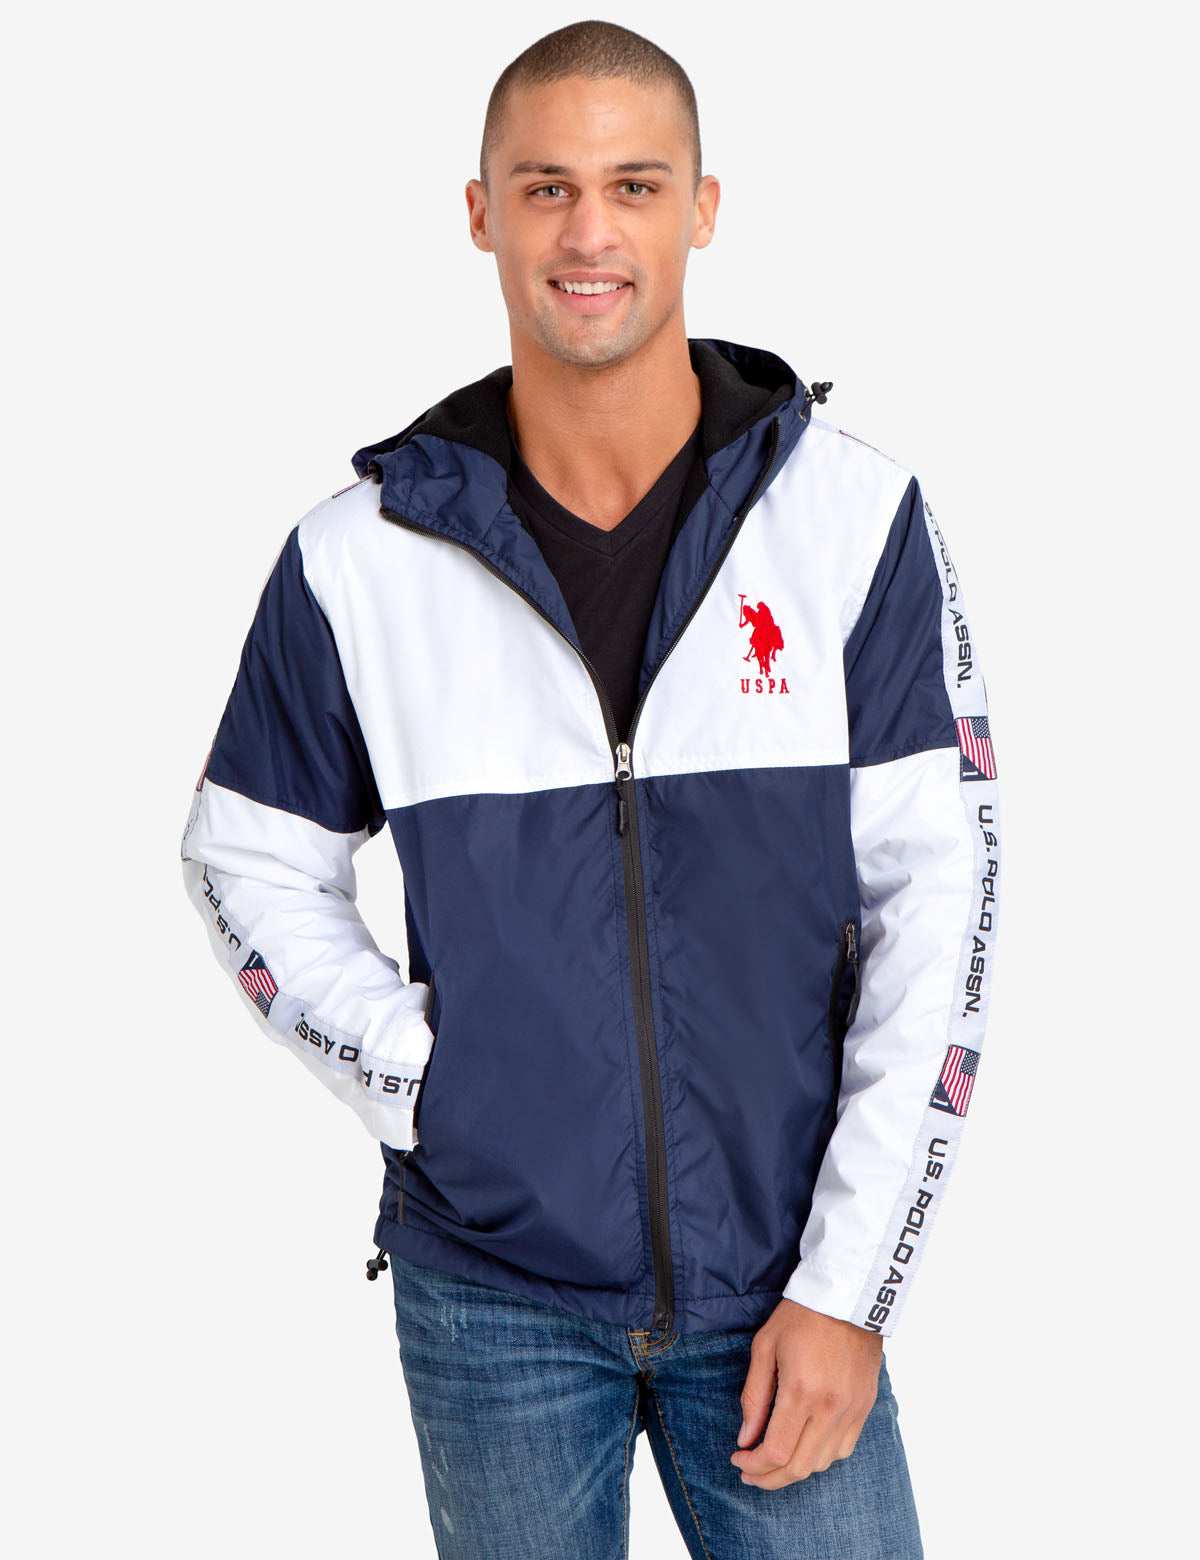 HOODED WINDBREAKER WITH U.S. POLO ASSN. SIDE TAPING - U.S. Polo Assn.